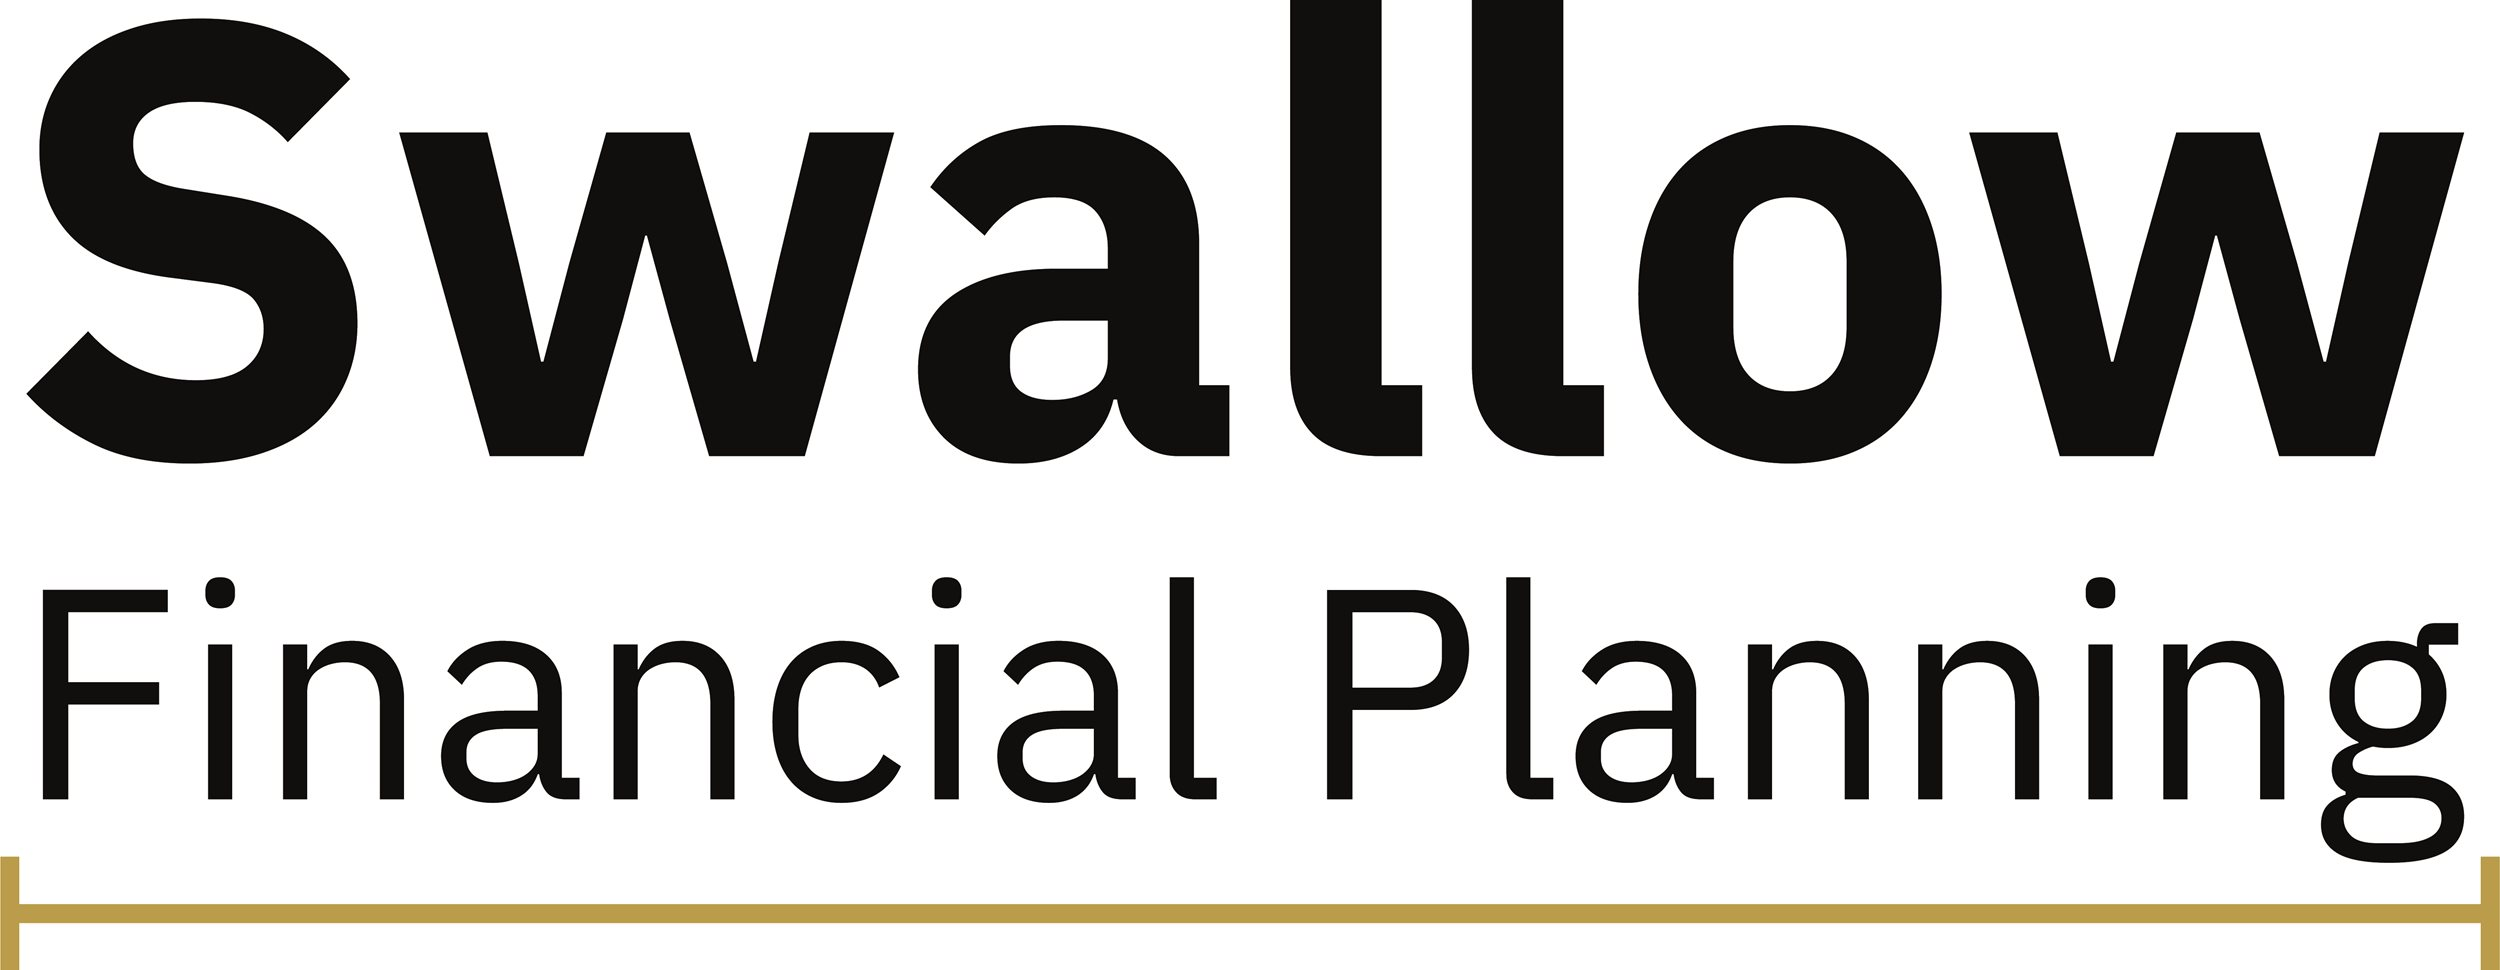 Swallow Financial Planning